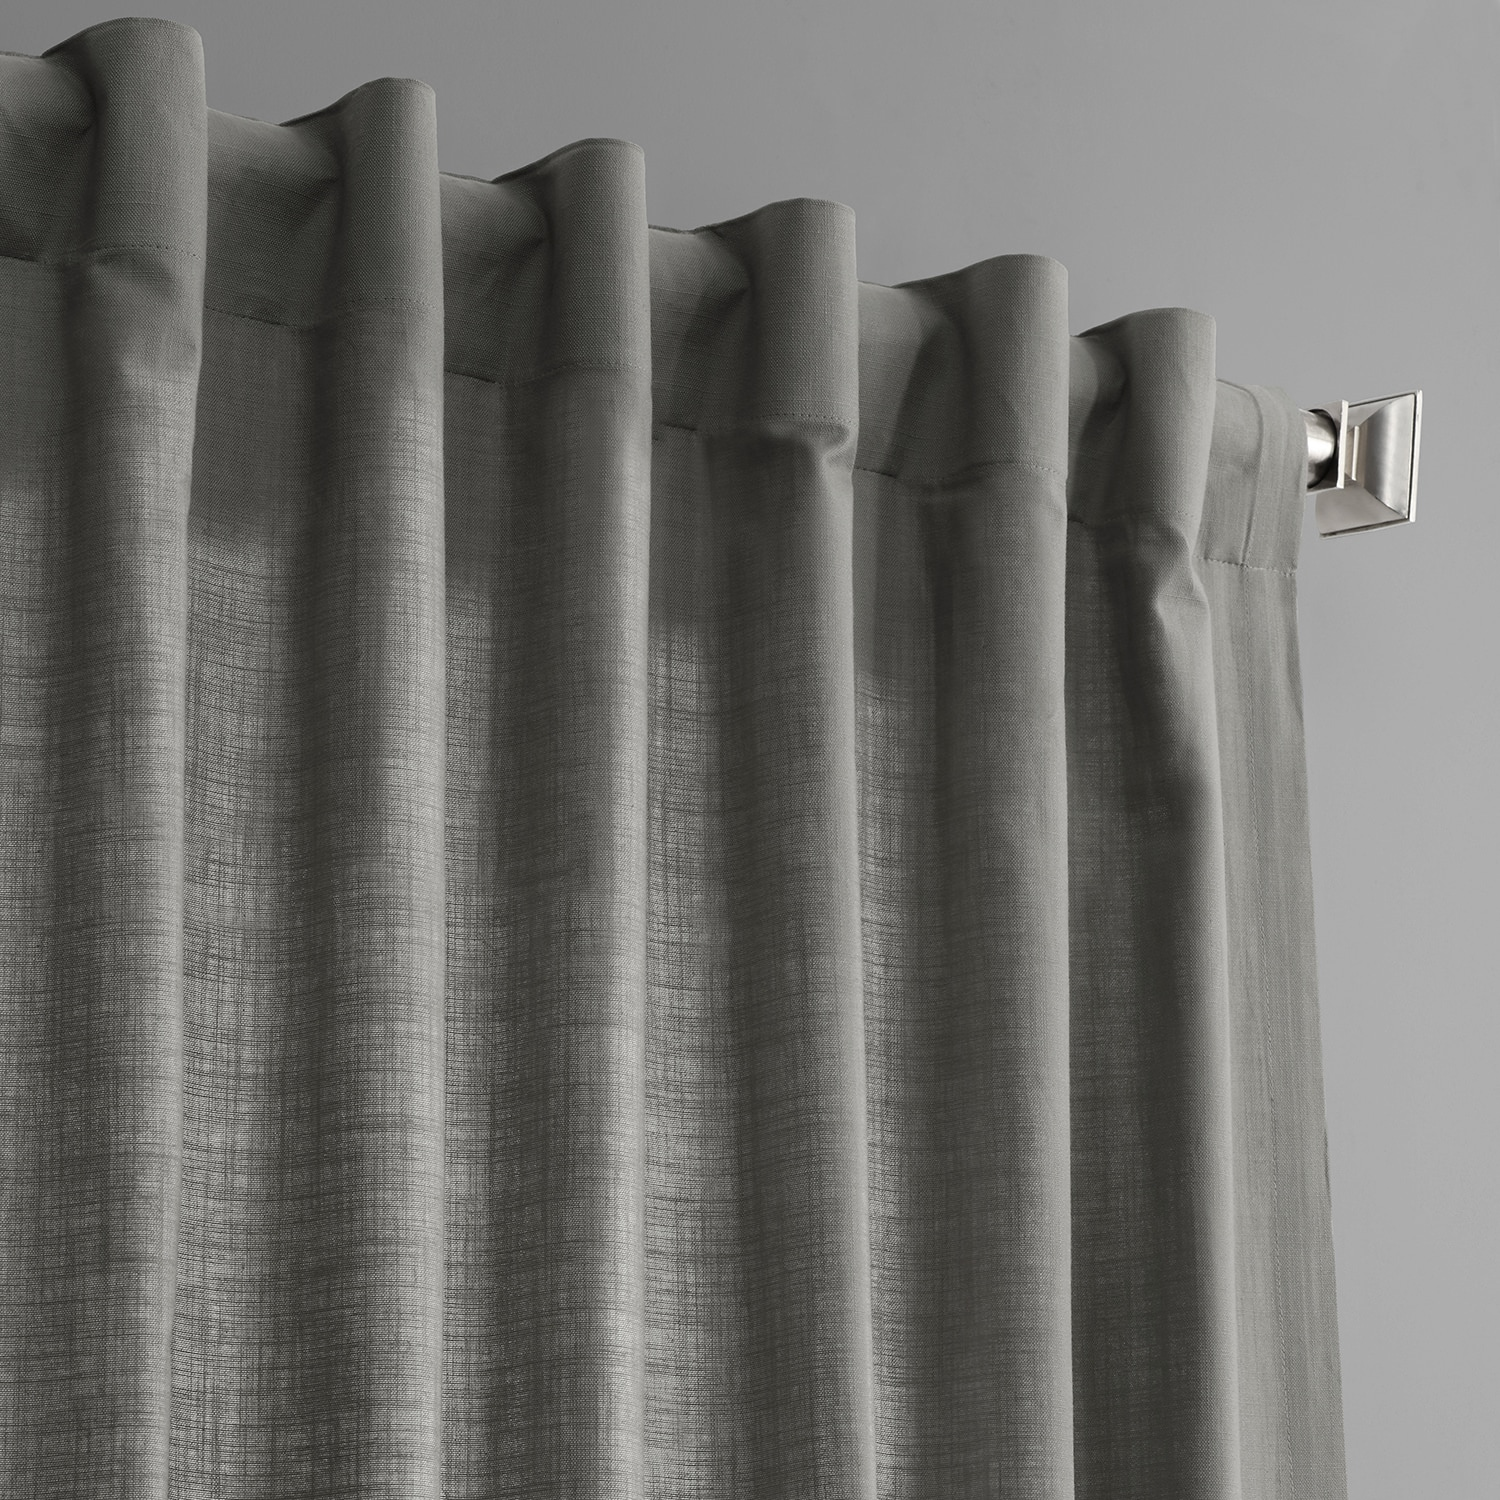 Graphite Grey Cotton Textural LinenWeave Curtain